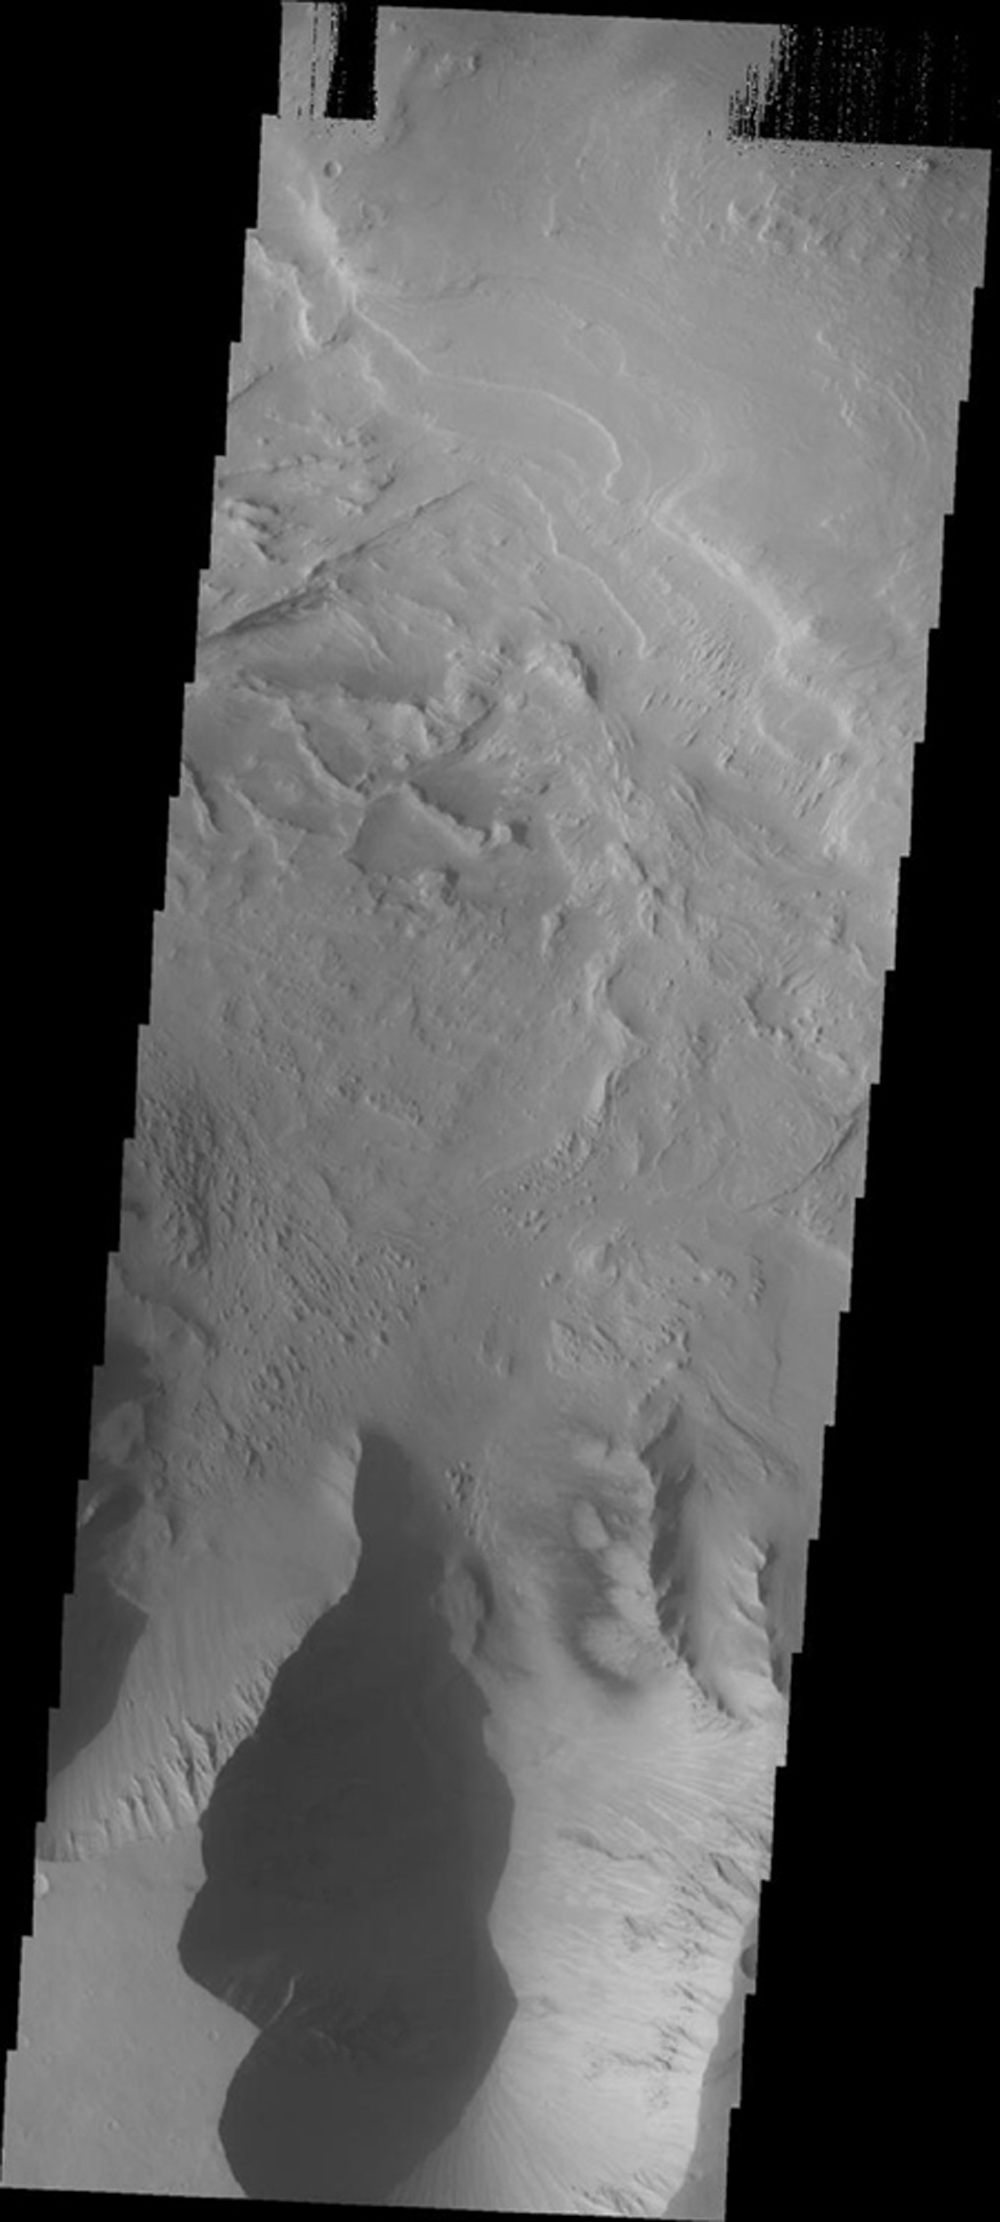 This image from NASA's Mars Odyssey shows a portion of Candor Chasma on Mars, including unusual dark markings on part of the canyon wall.